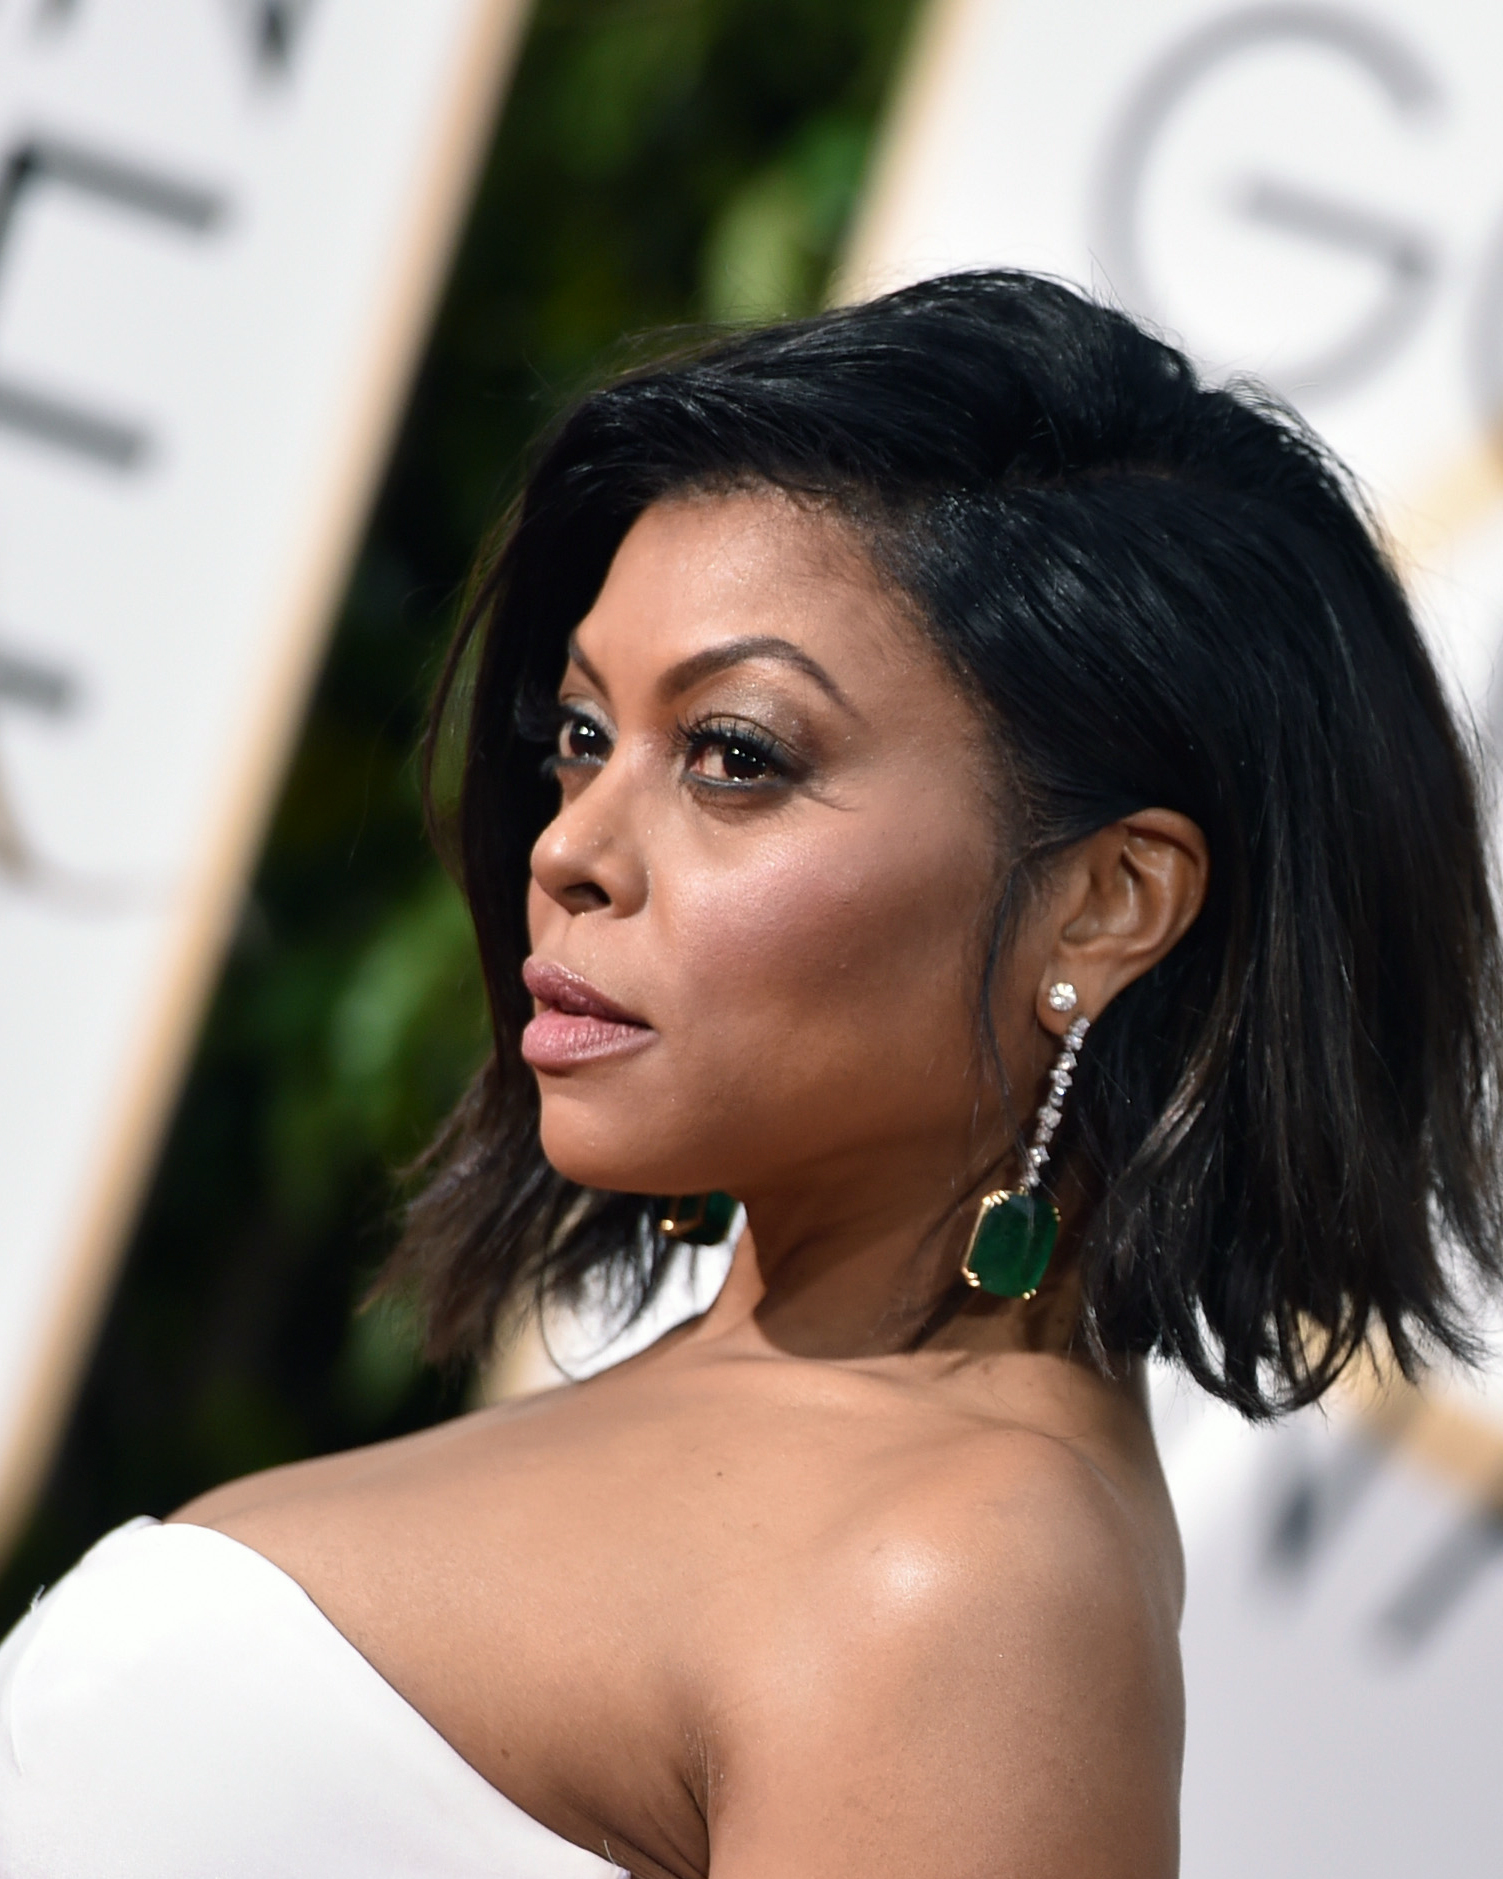 golden-globes-2016-hairstyles-taraji-p-henson-side-0116.jpg